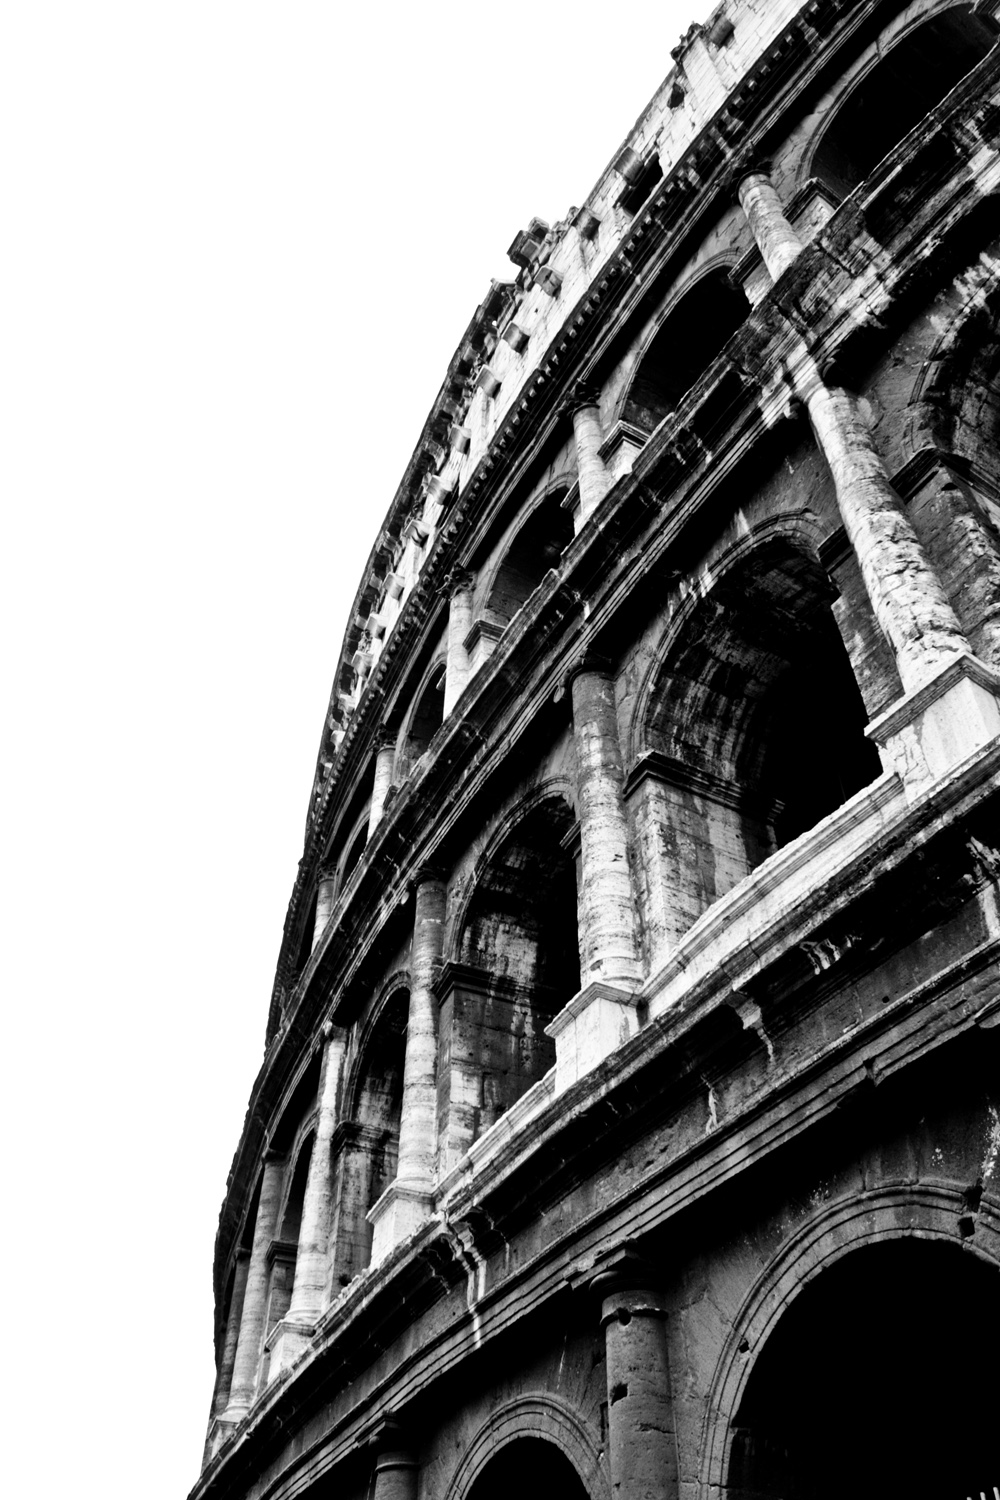 Colosseo (Rome, Italy)